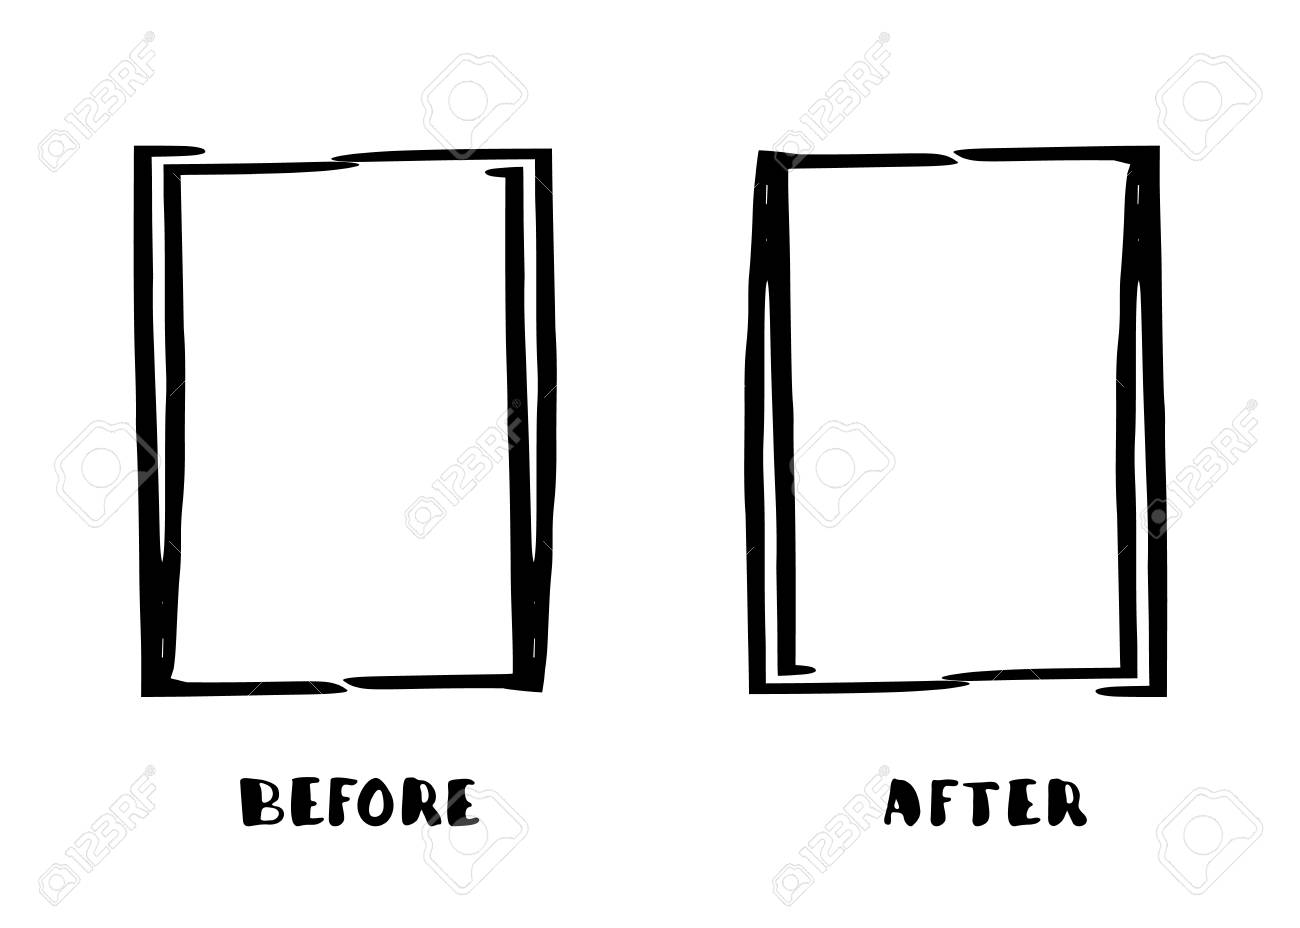 before and after frames isolated on white background comparison